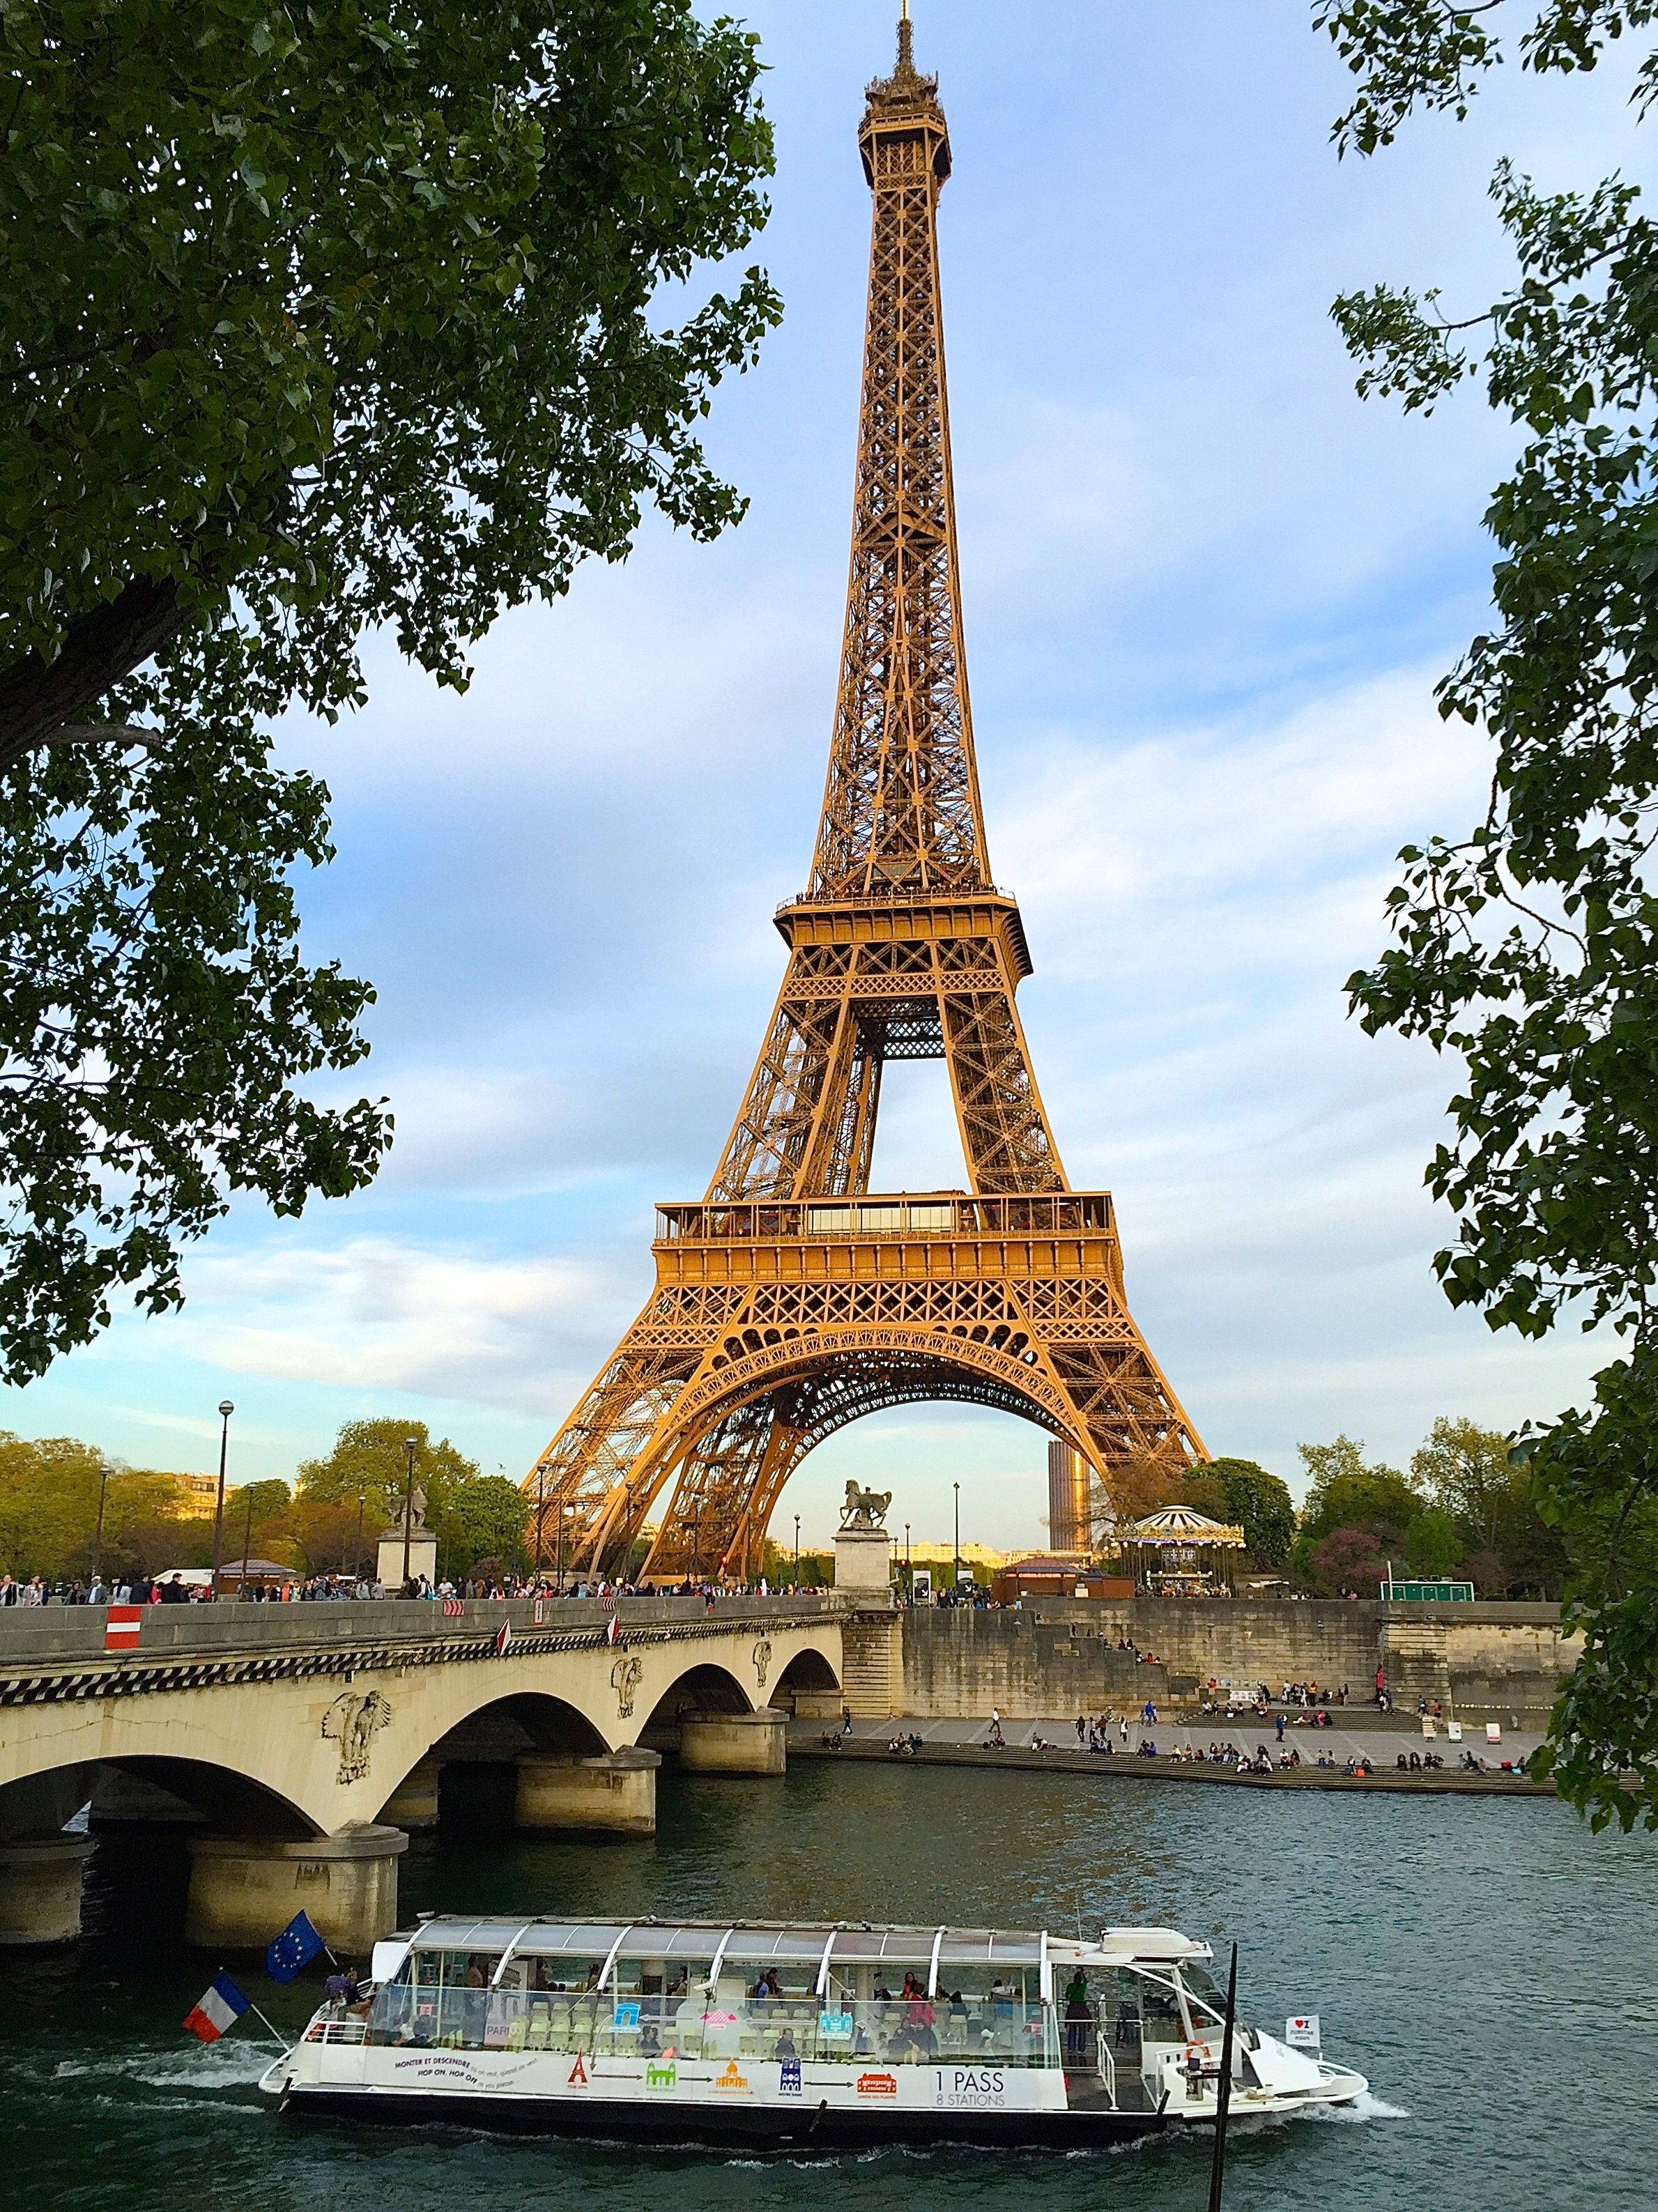 Eiffel Tower along Seine River